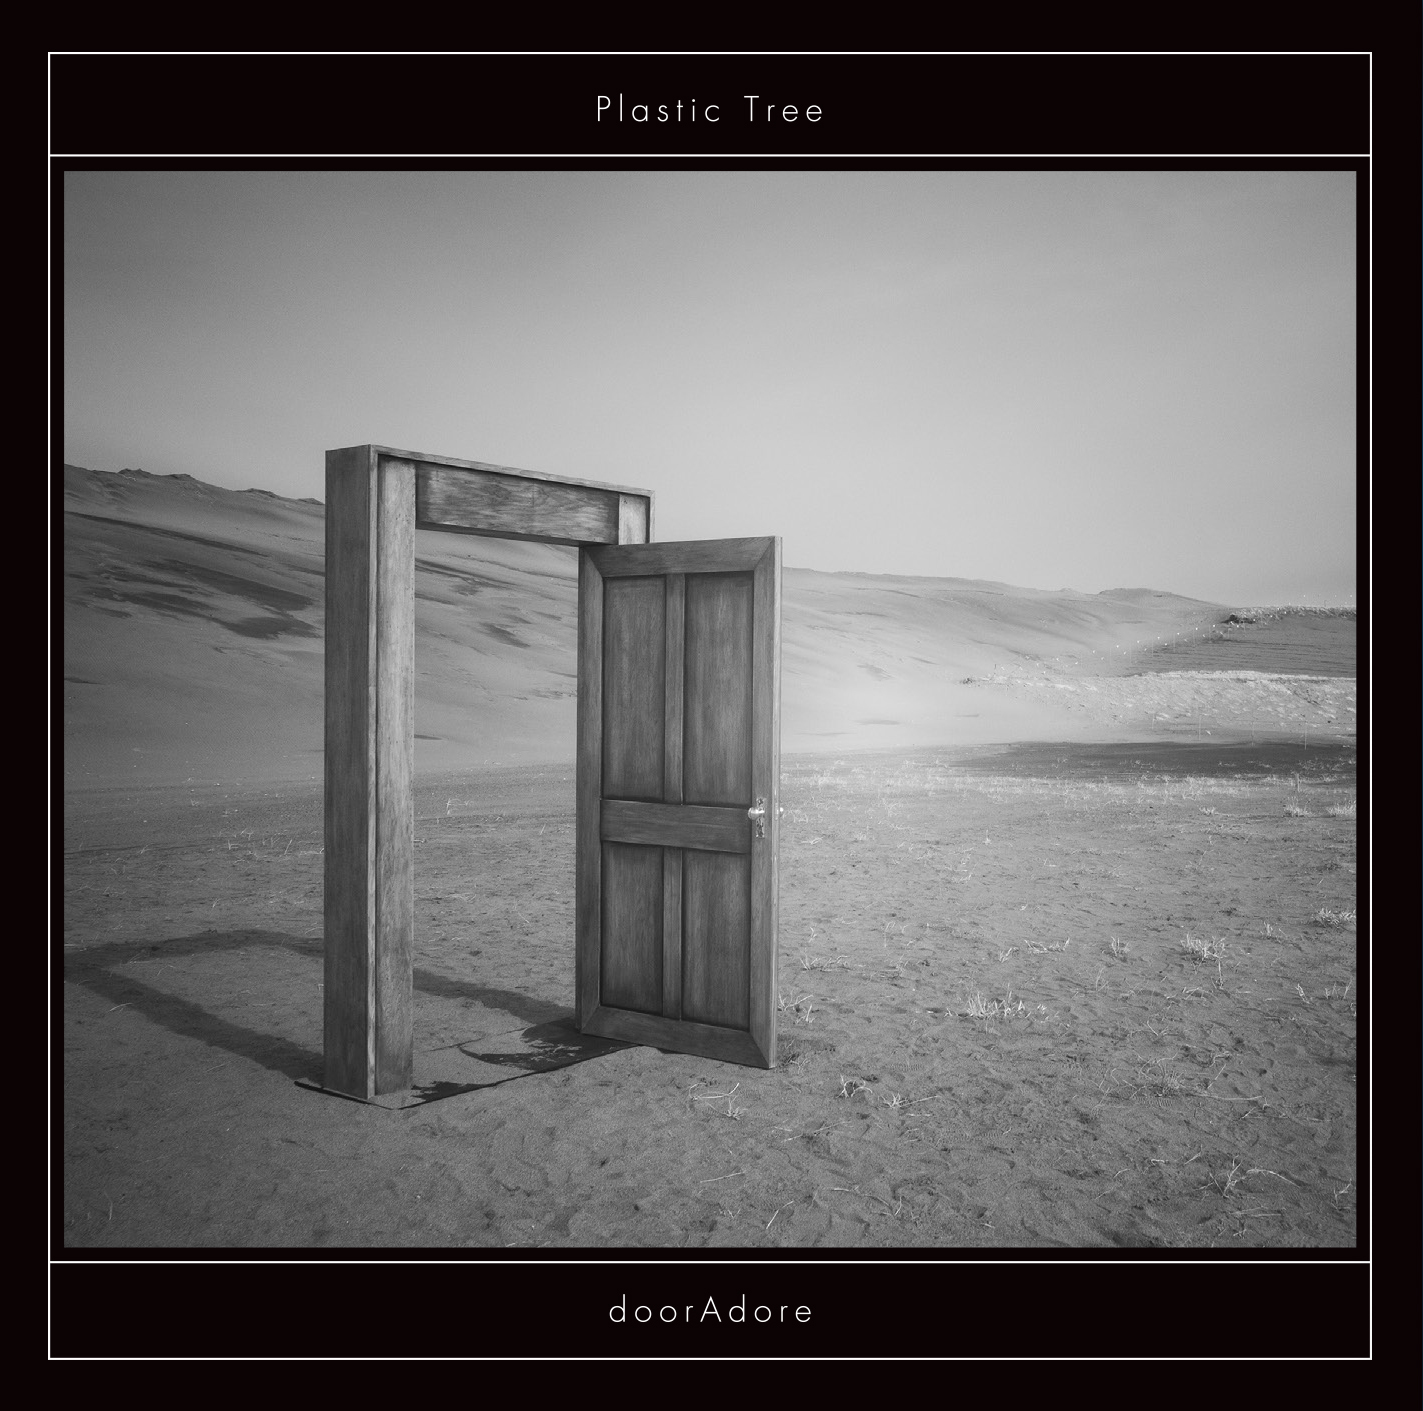 Plastic Tree『doorAdore』通常盤